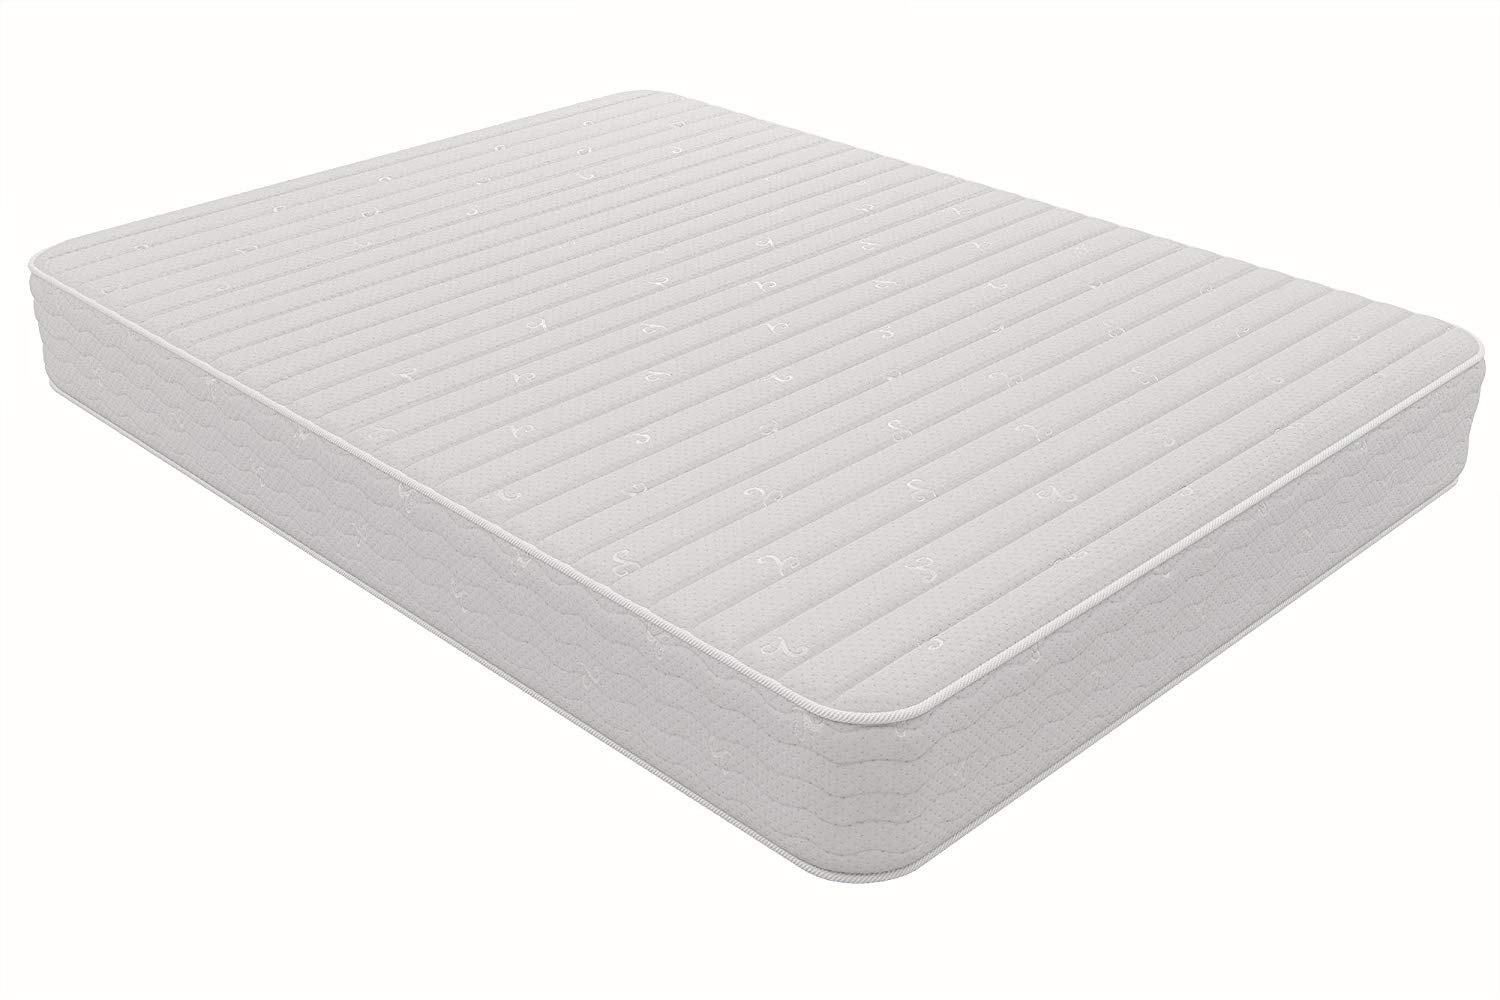 "Signature Sleep 10"" Coil Mattress Review"